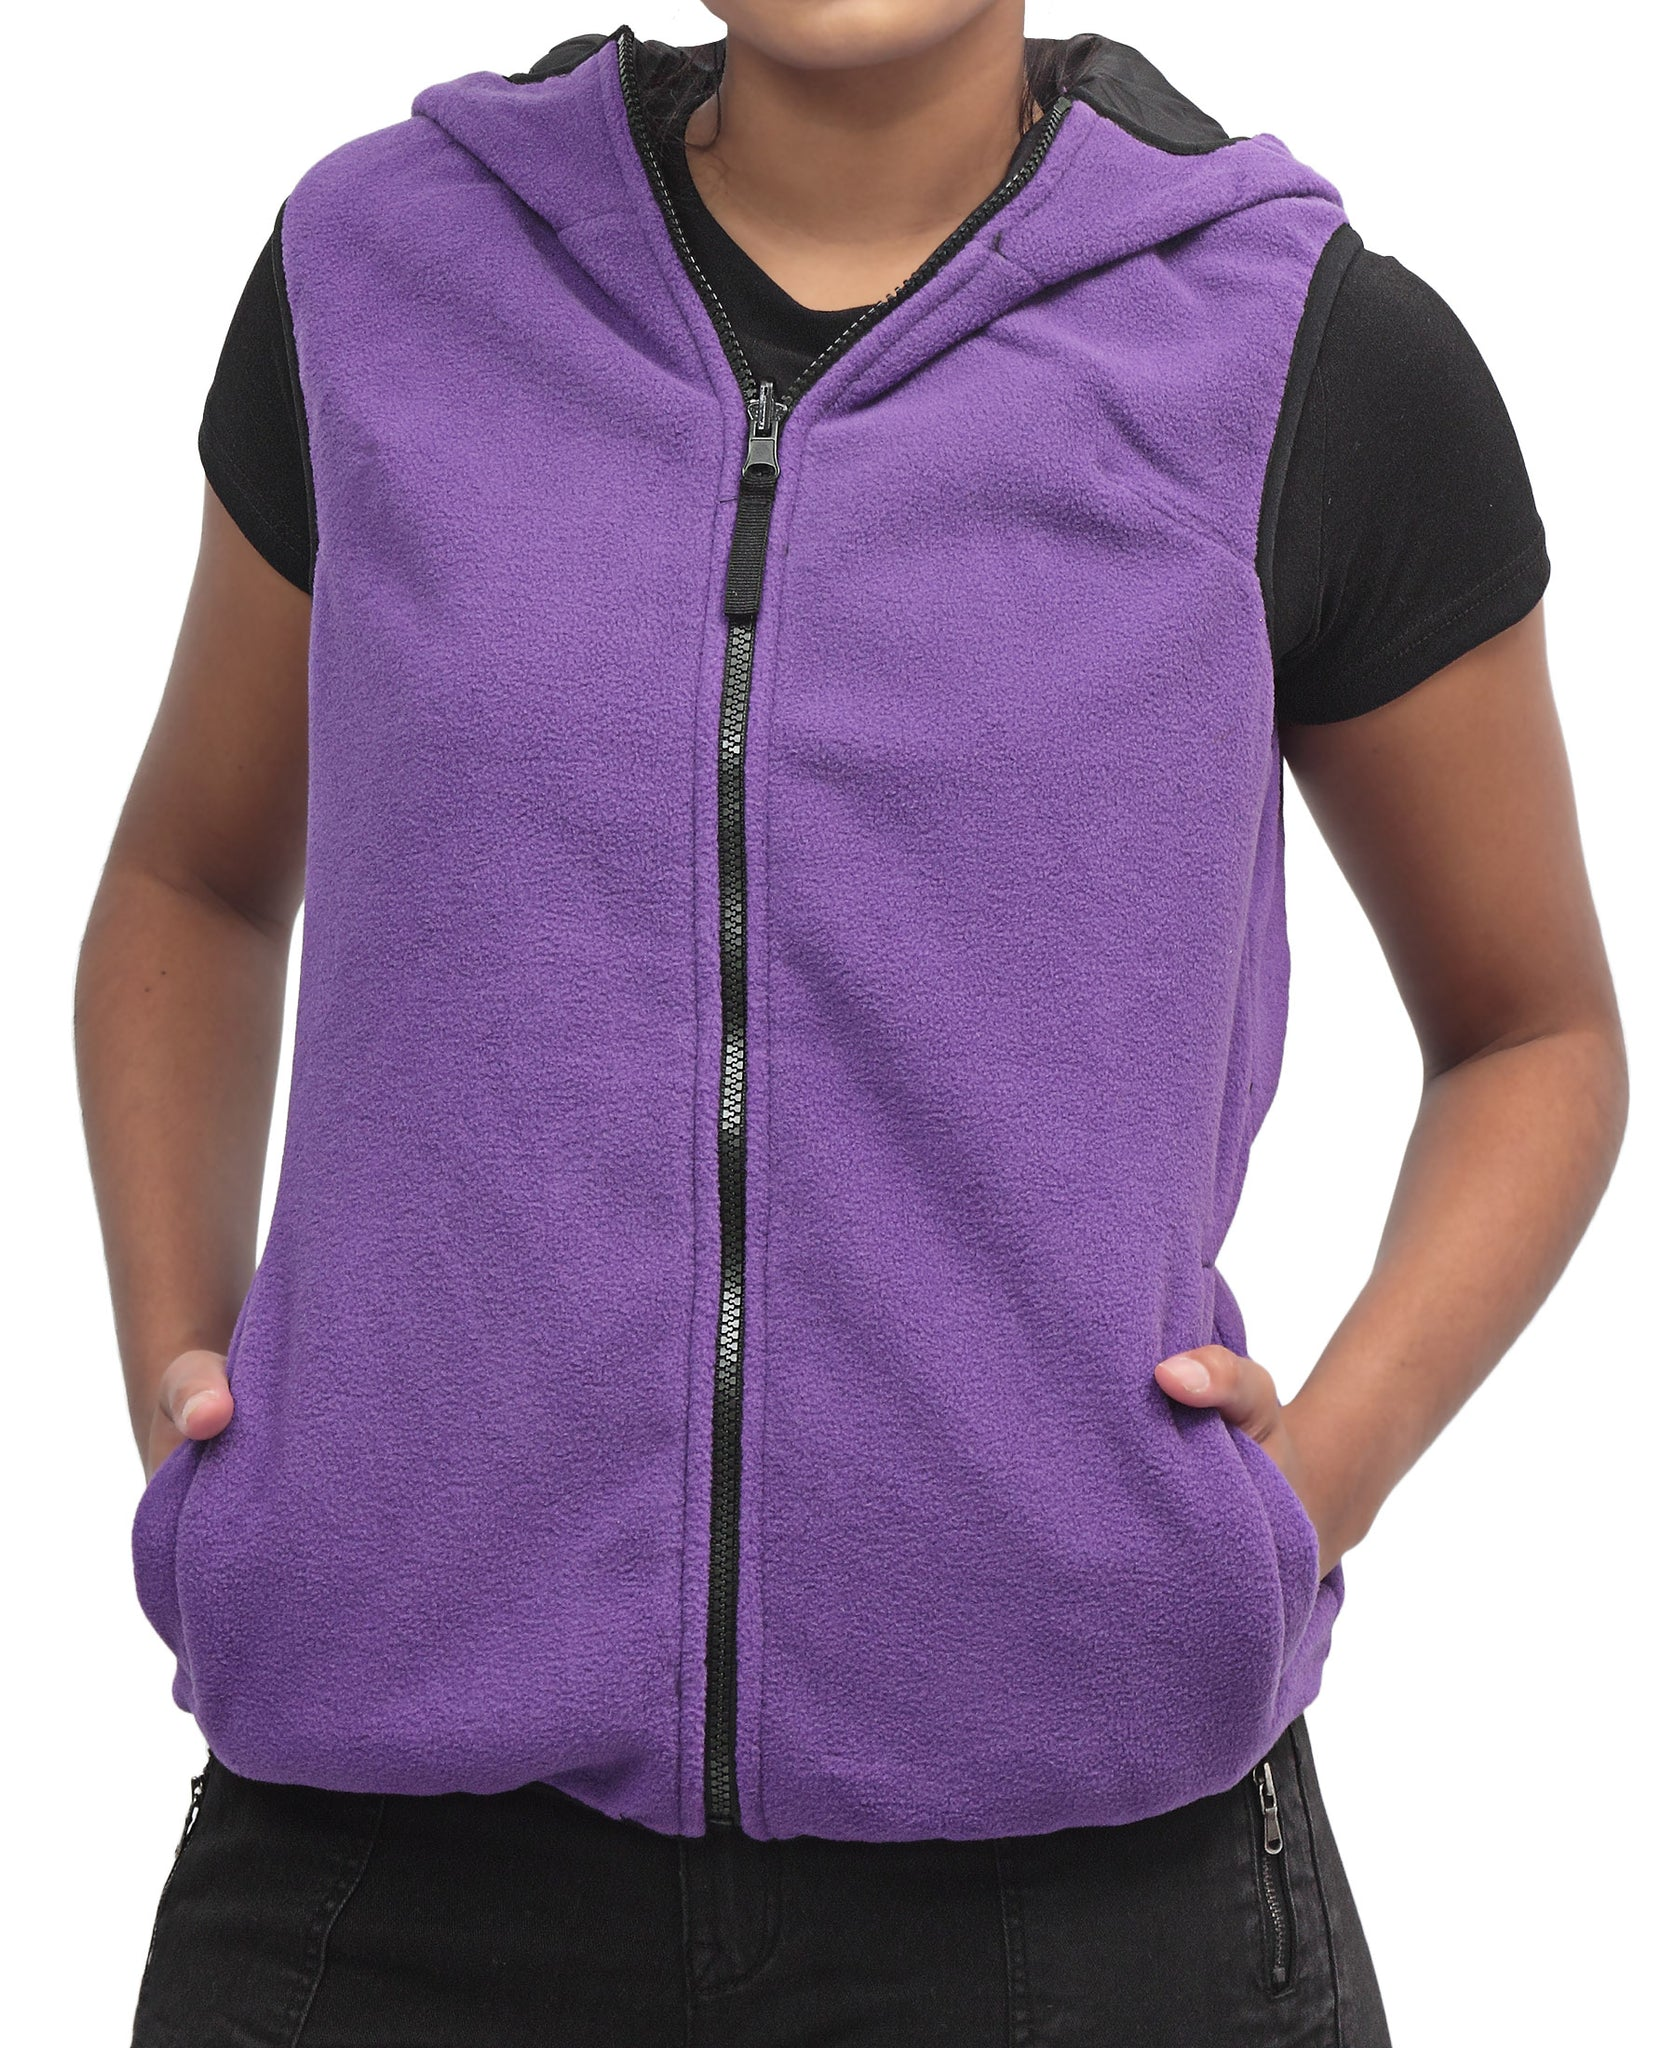 Sleeveless Jacket - Purple